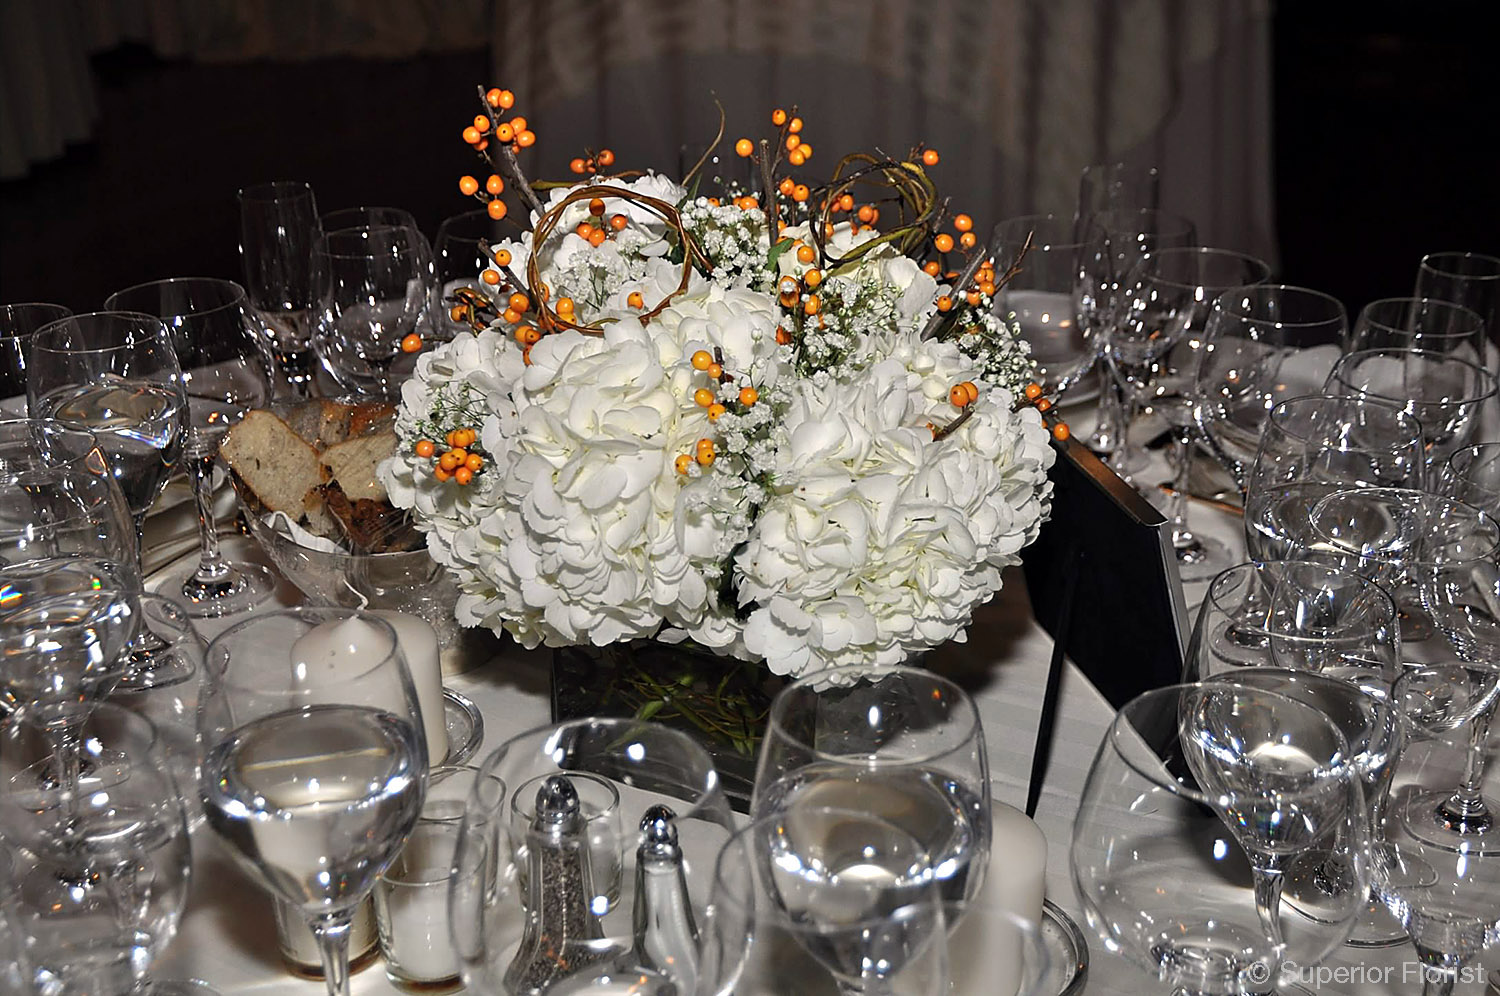 Superior Florist – Centerpieces: Dinner table centerpiece of Hydrangeas, Baby's Breath and orange ilex branches in a small, glass cube vase.